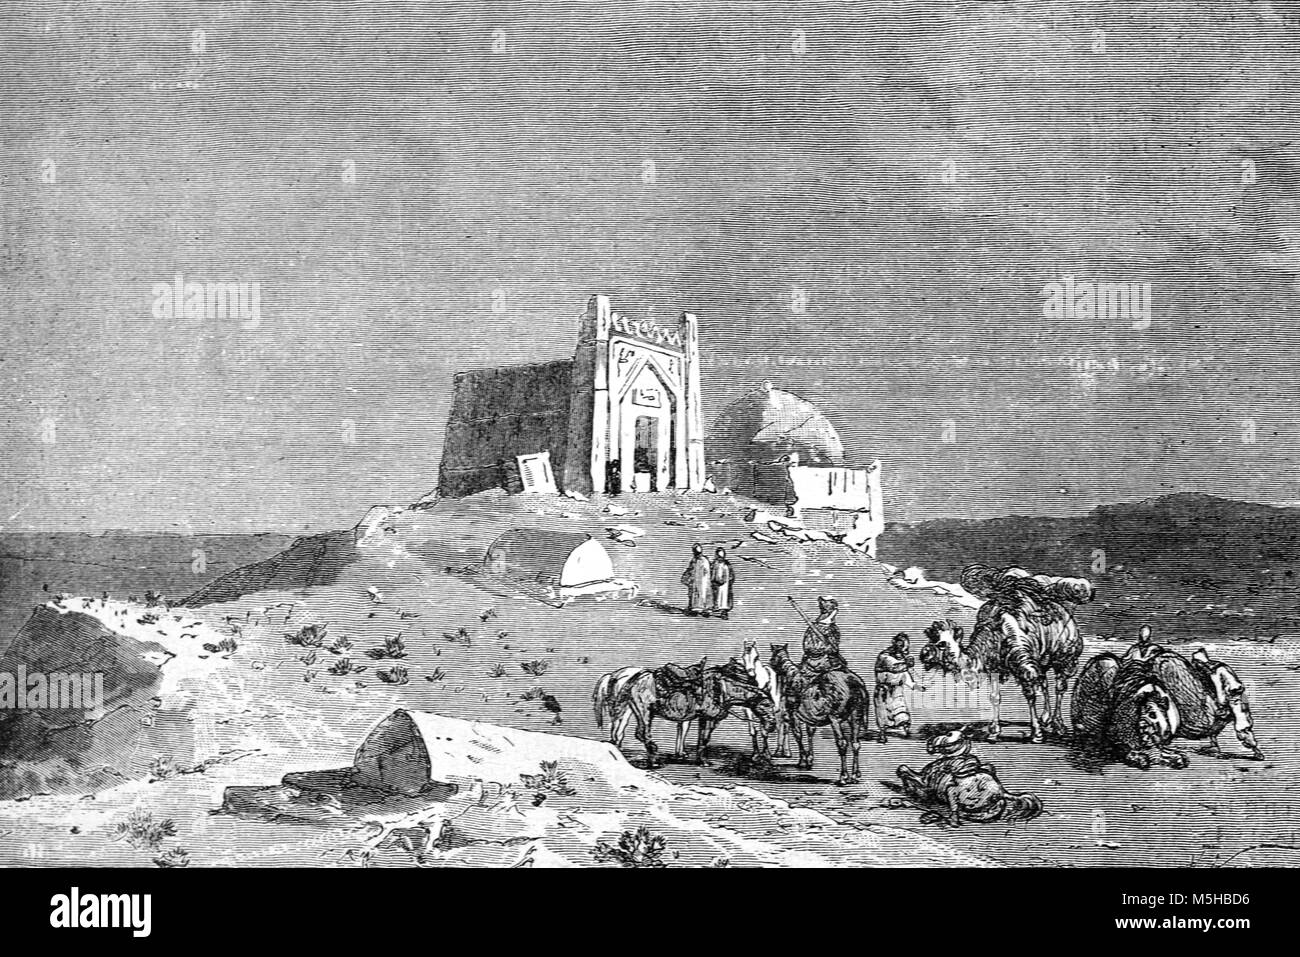 Tomb or Mausoleum of Seljuk Sultan Ahmad Sanjar (1157) in the Ruins of the Ancient City of Merv, near Mary, Turkmenistan Stock Photo